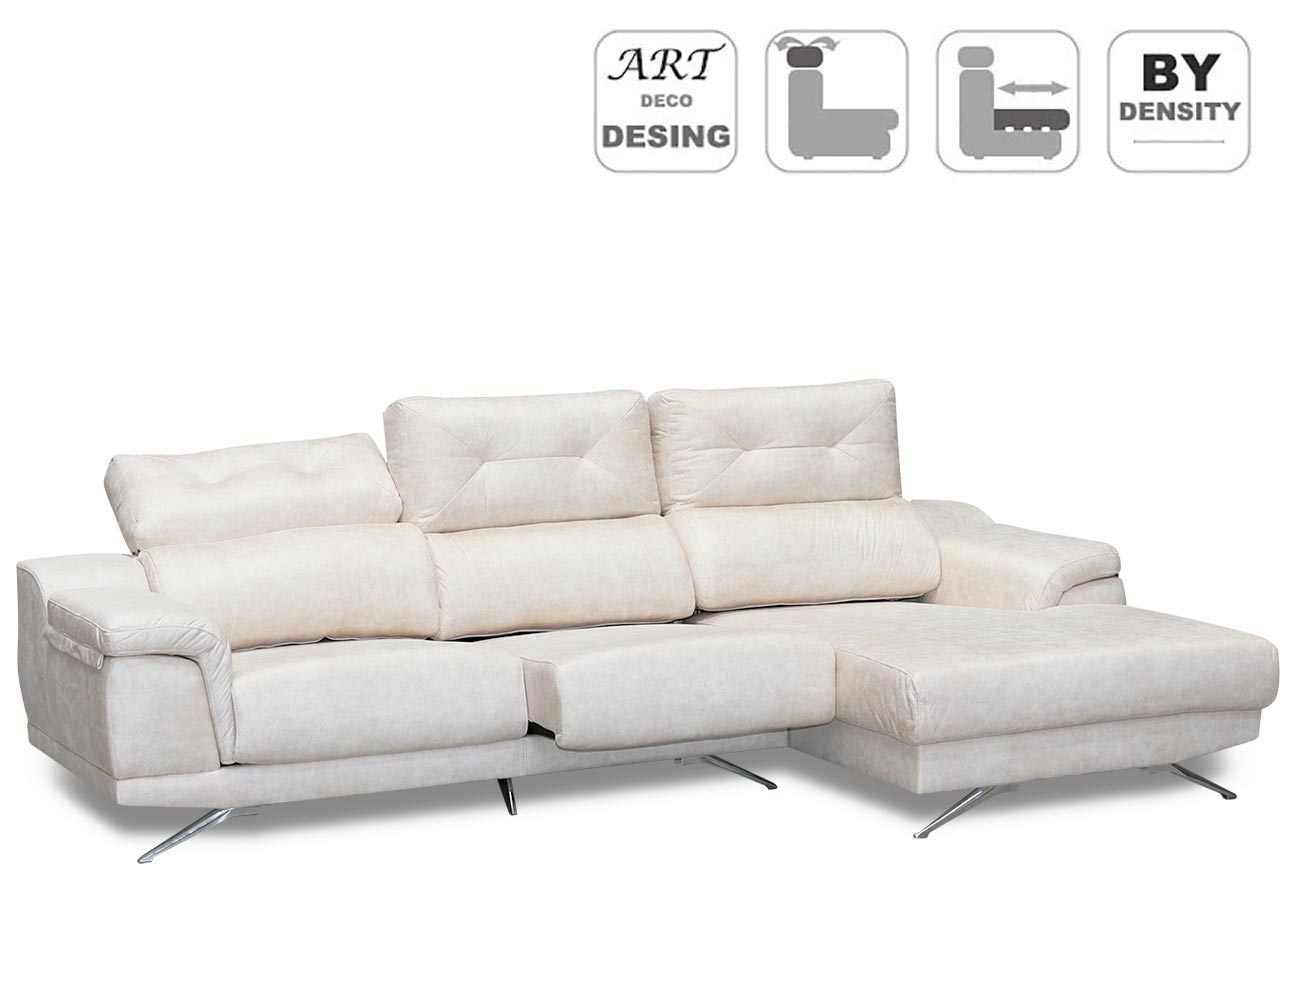 Sofa chaiselongue moderno anti manchas detalle